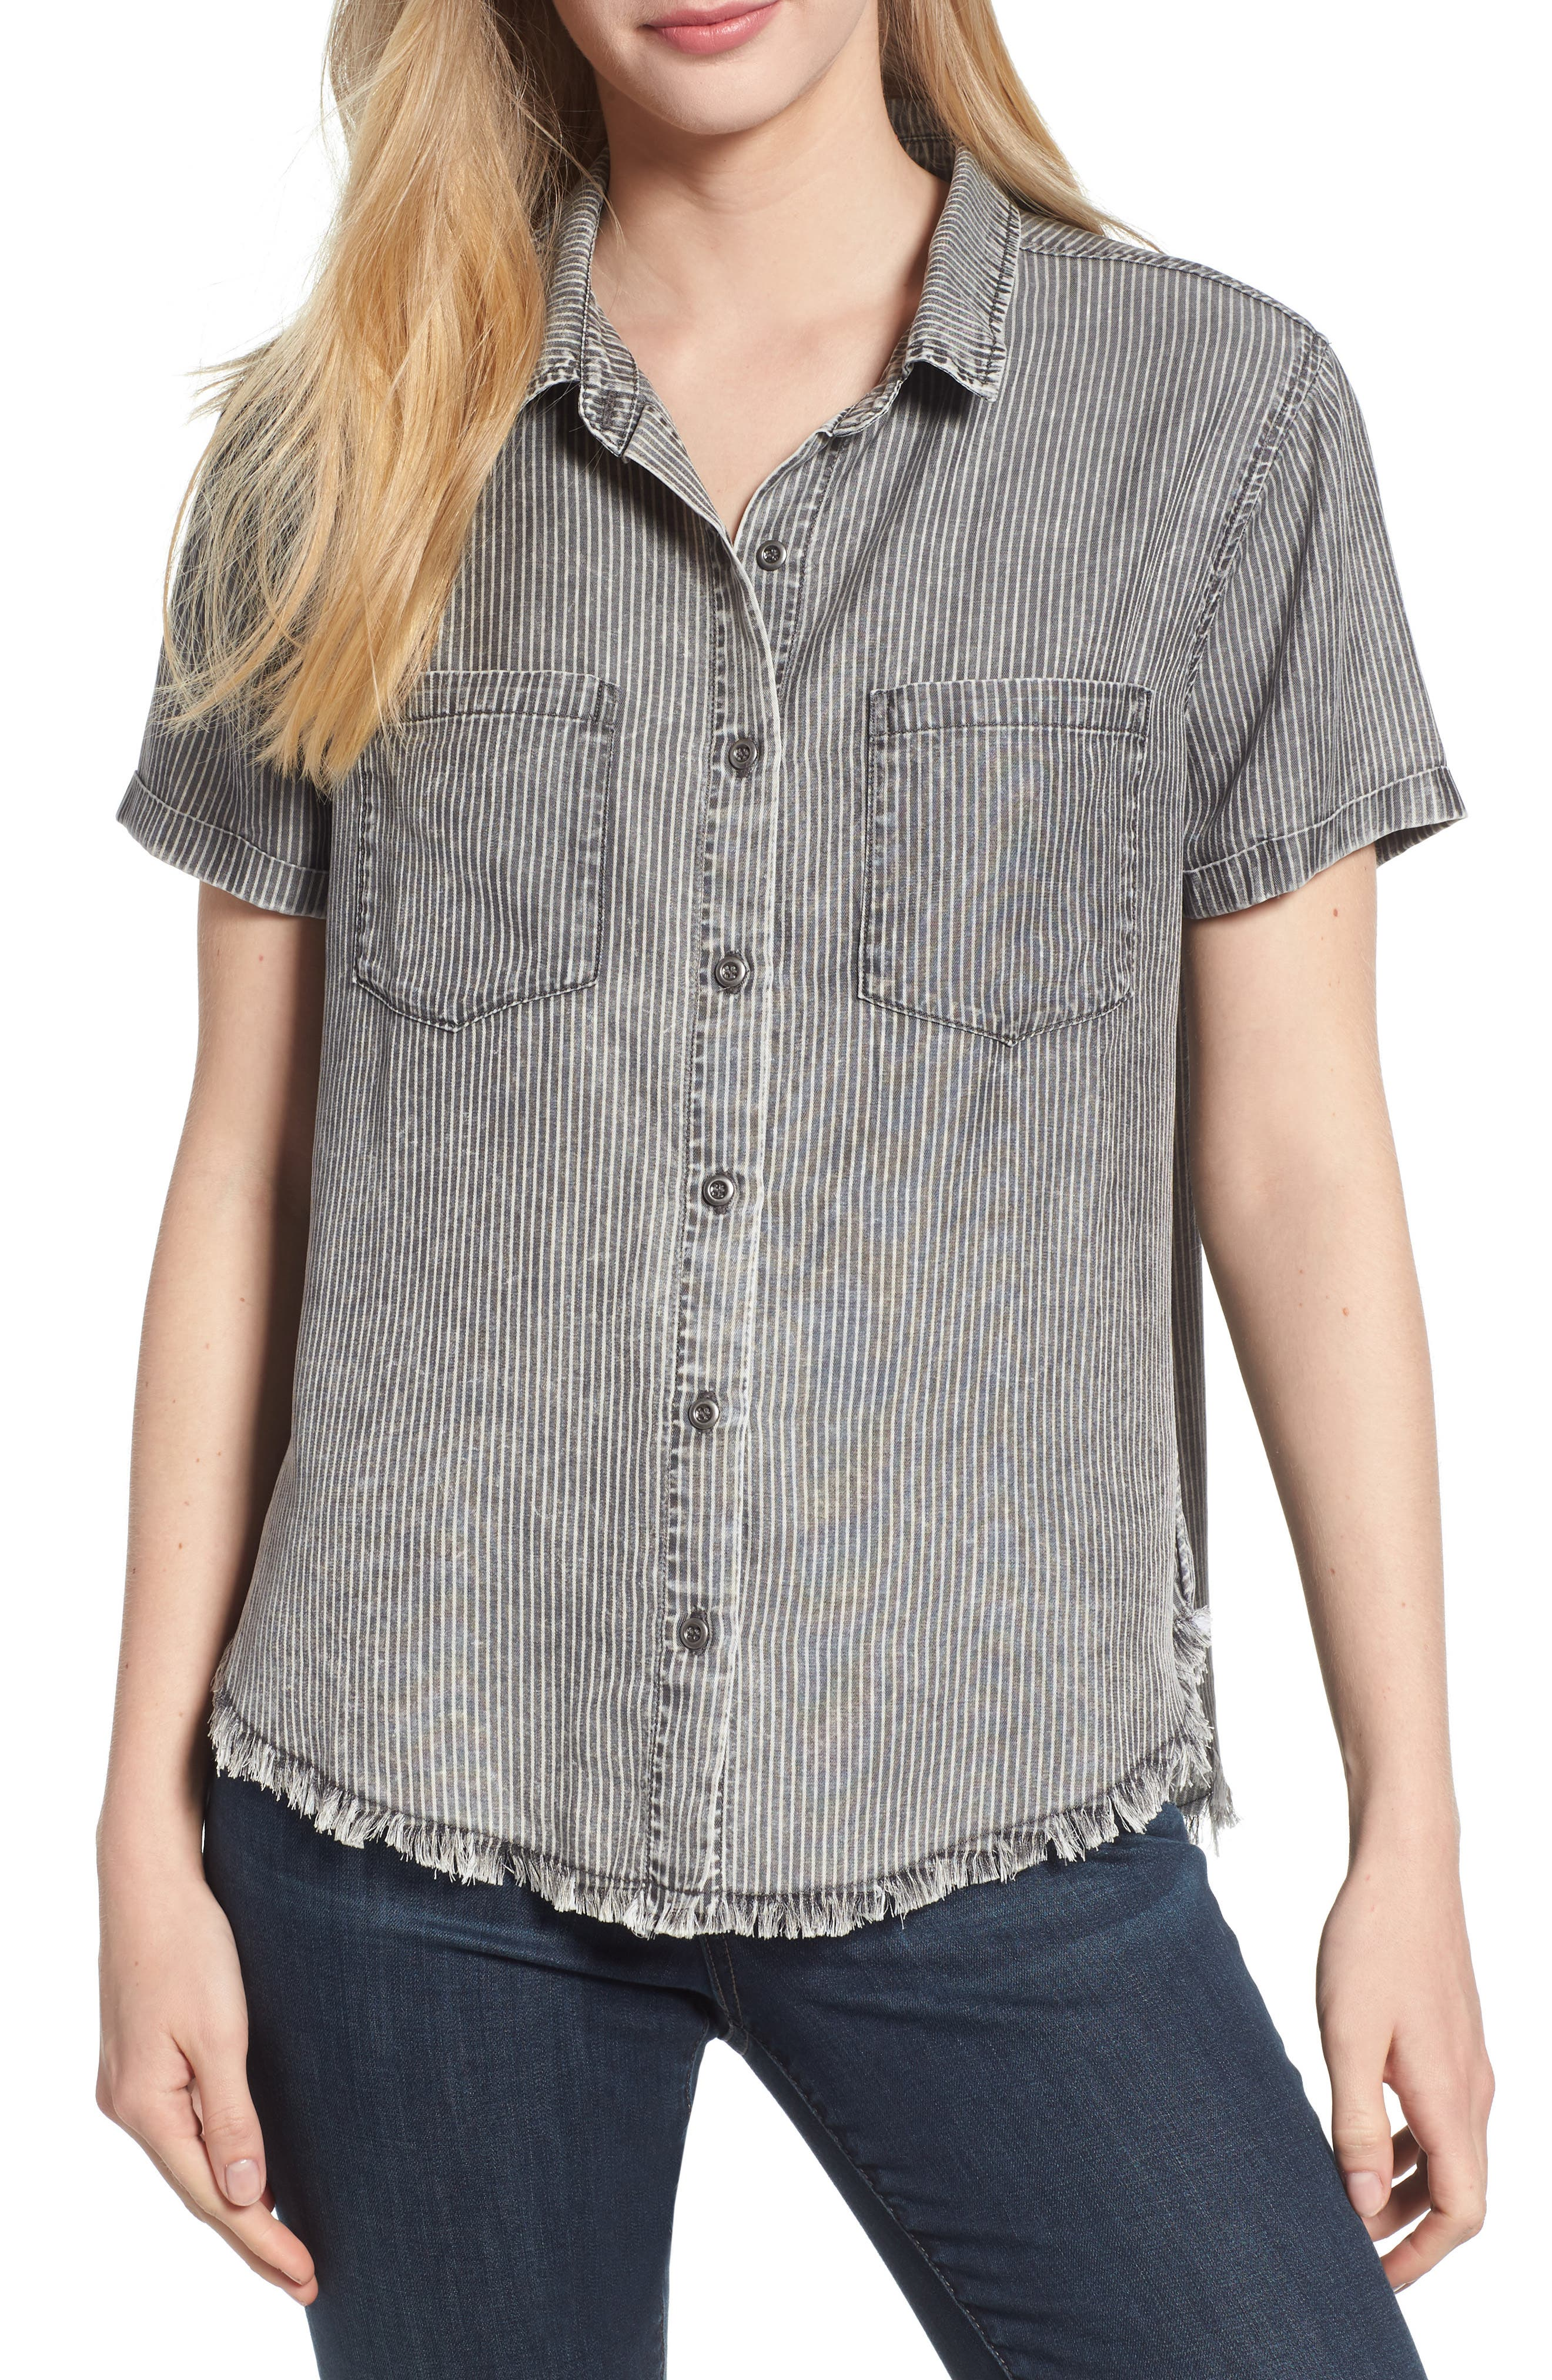 BILLY T Ticking Stripe Shirt, Main, color, 032